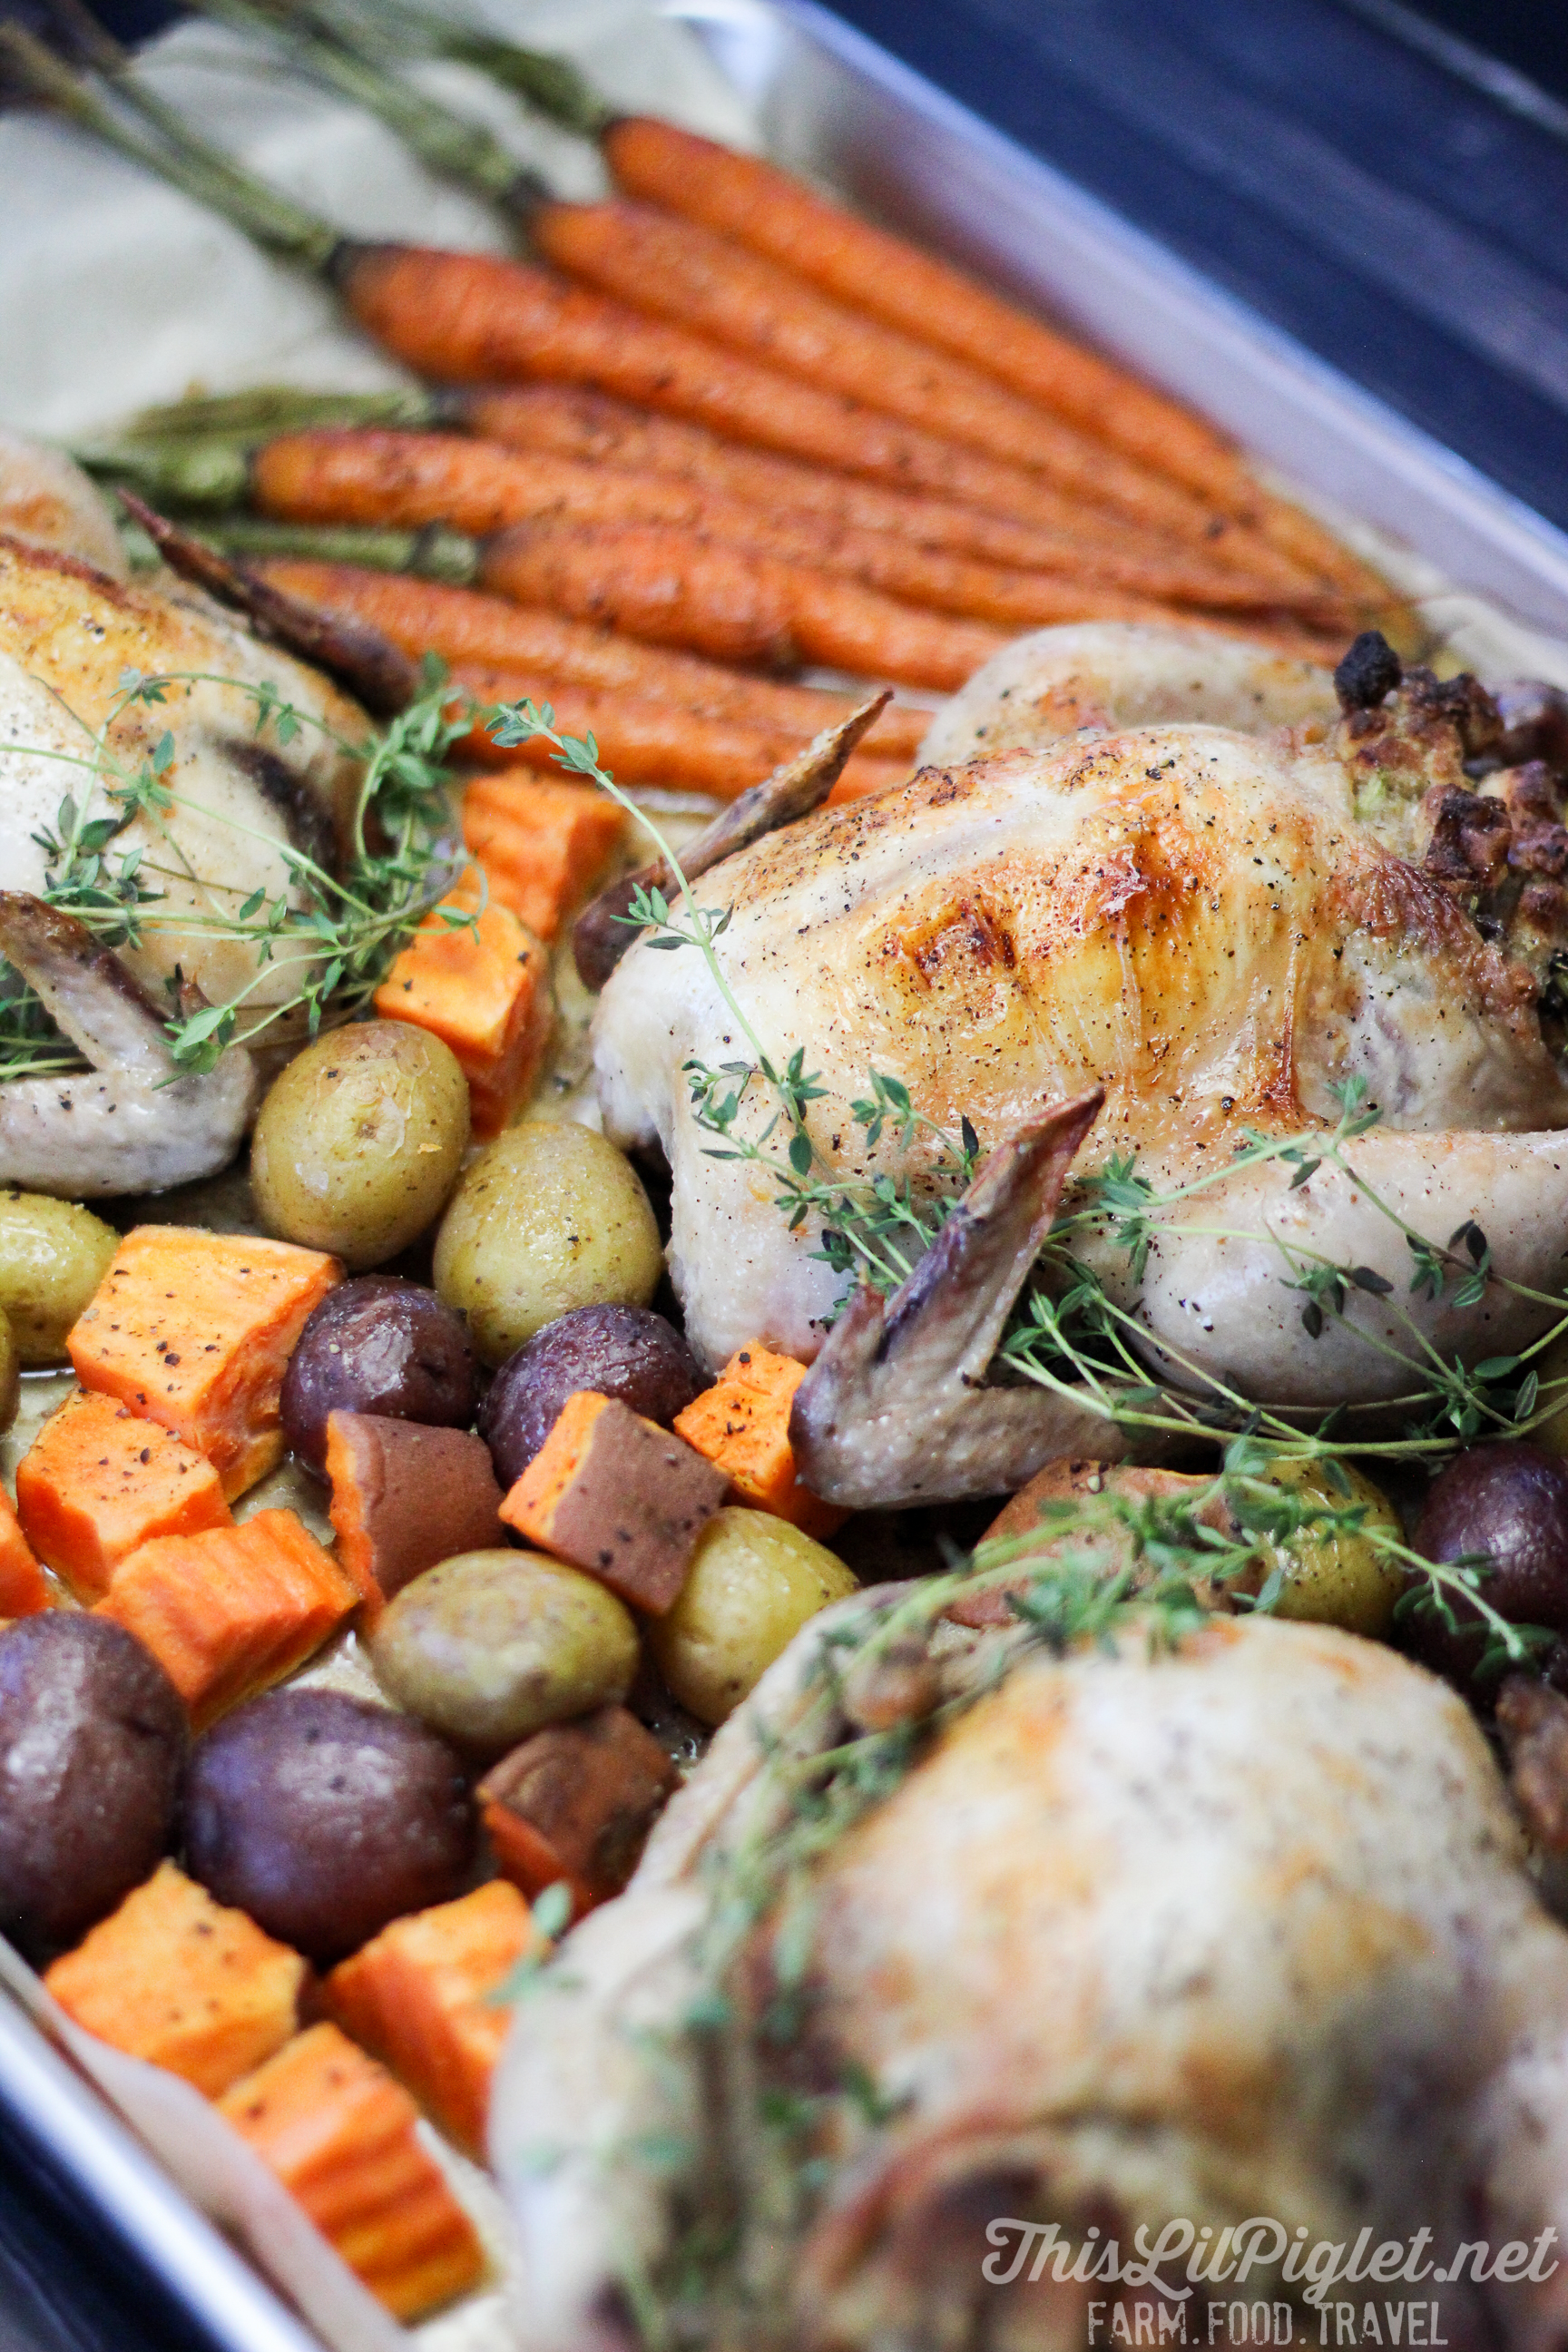 Family Style One Pan Meals: Stuffed Cornish Hens with Roasted Vegetables // @thislilpiglet